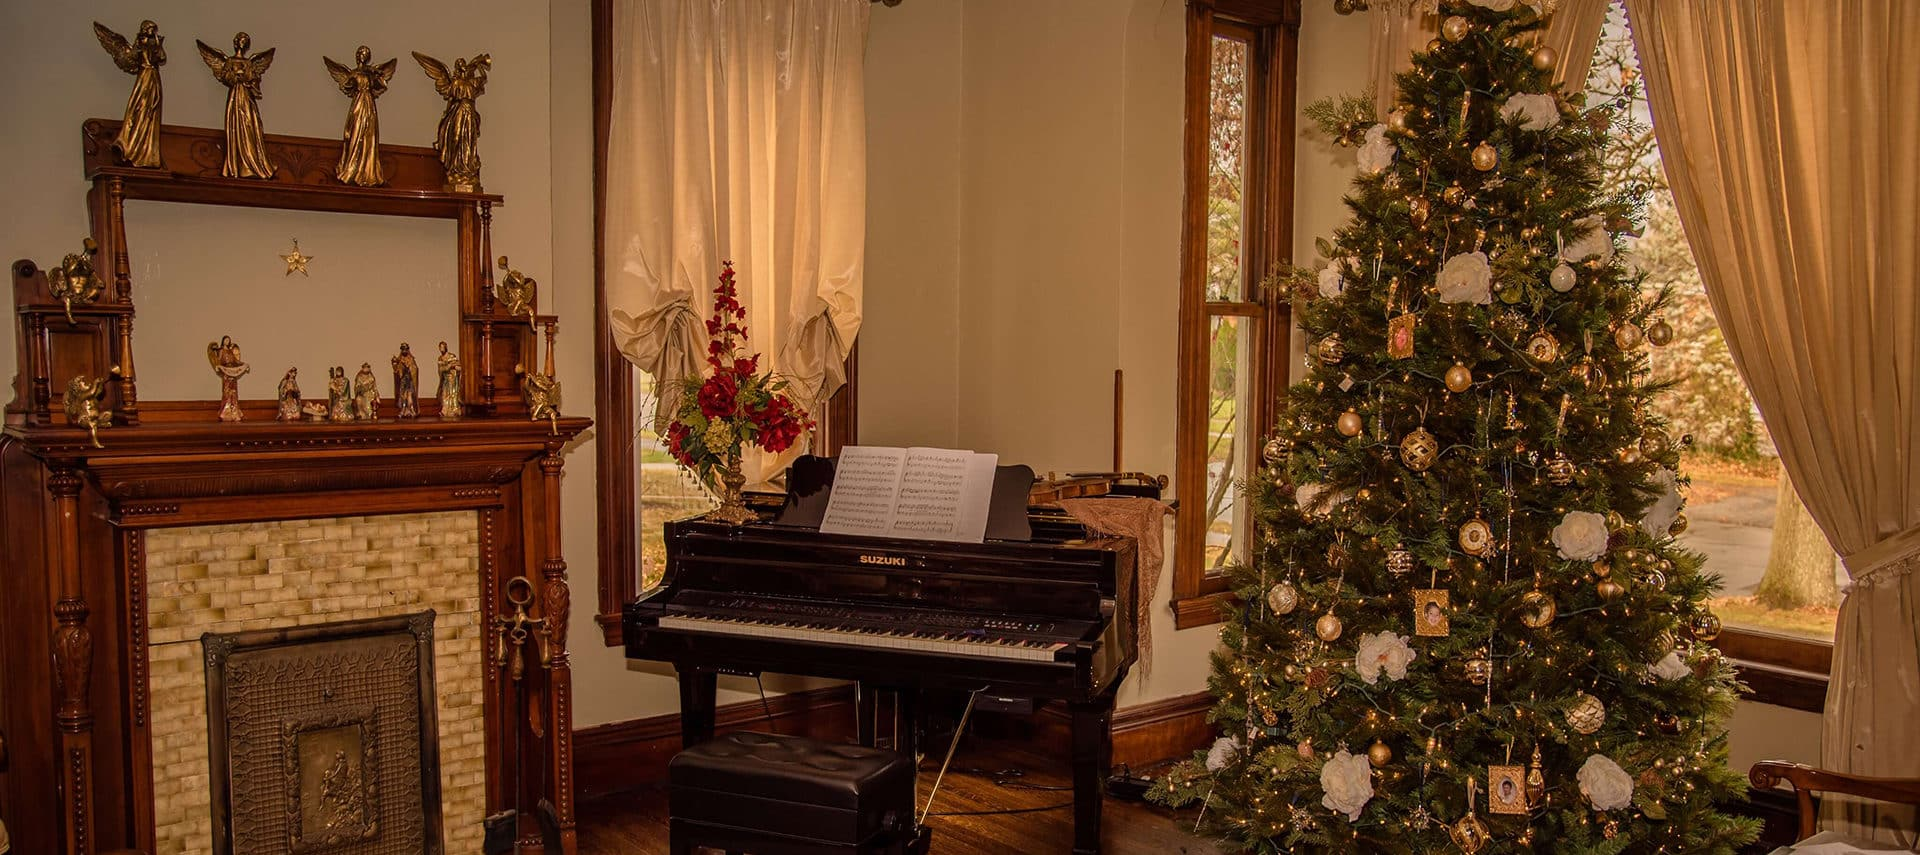 festive fireplace angels grand piano and decorated Christmas tree